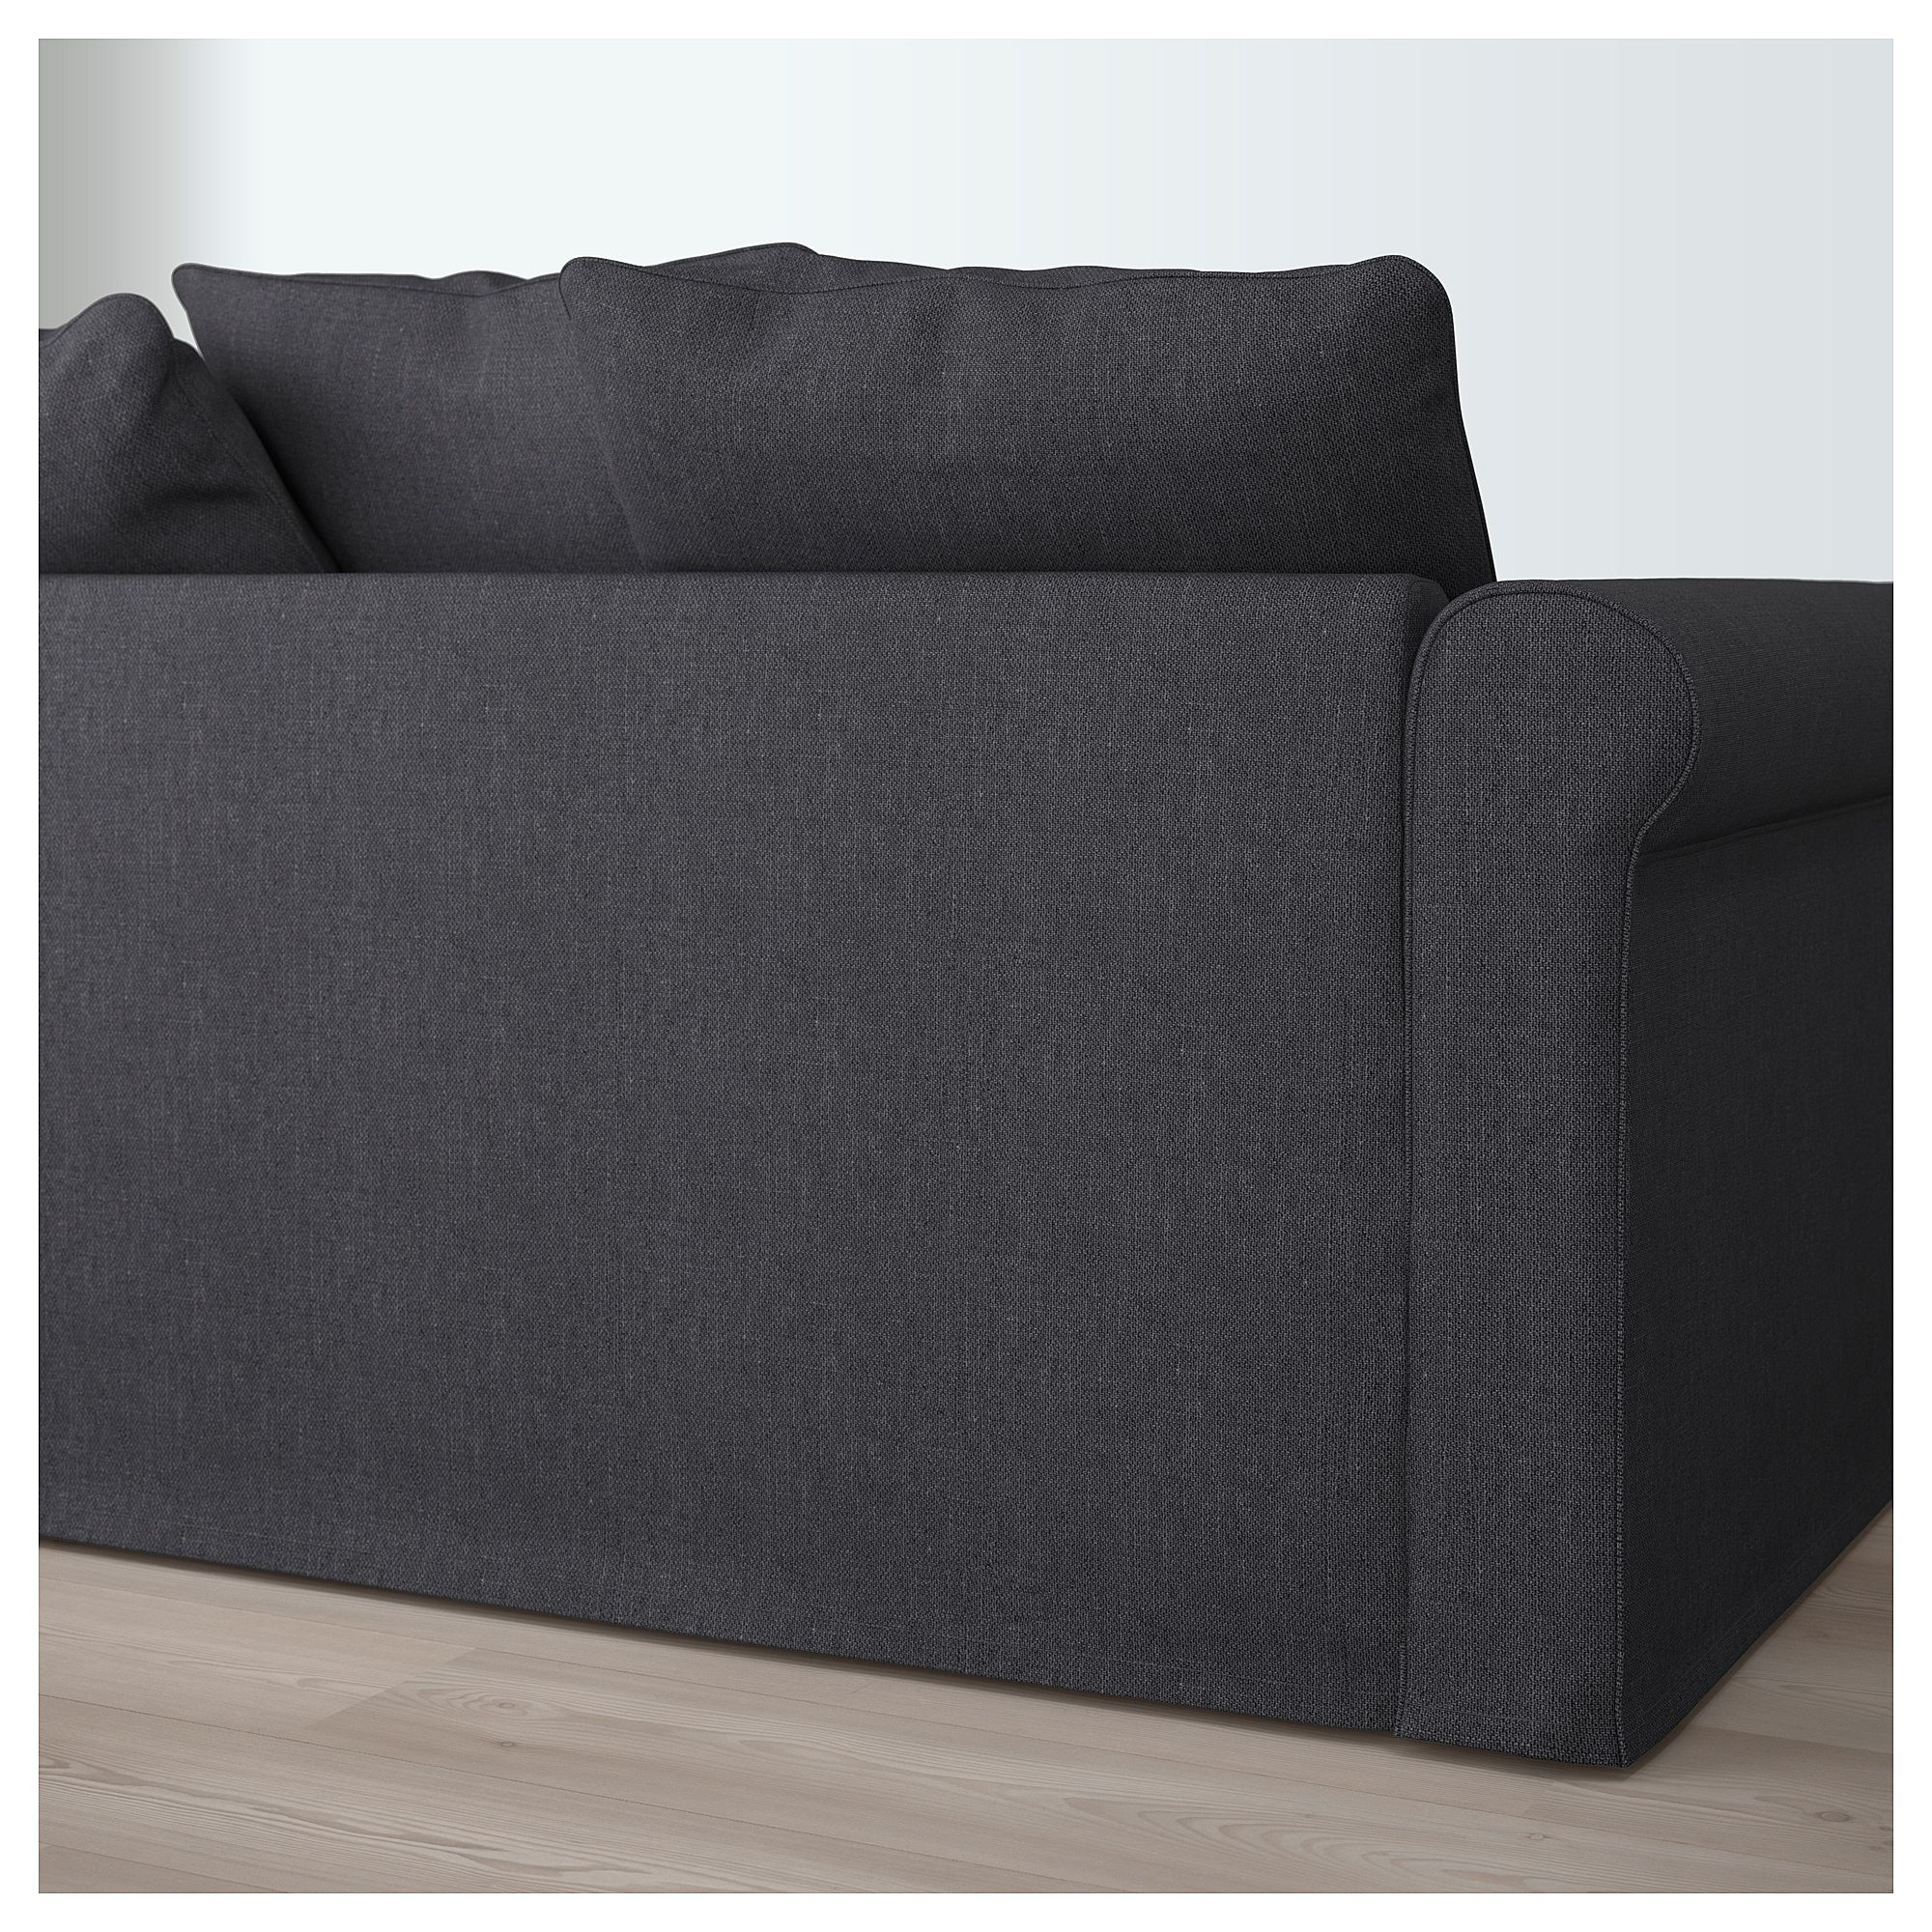 Boxspring Ecksofa Mit Schlaffunktion Ikea GrÖnlid Loveseat Sporda Dark Gray Products Ikea Sofa